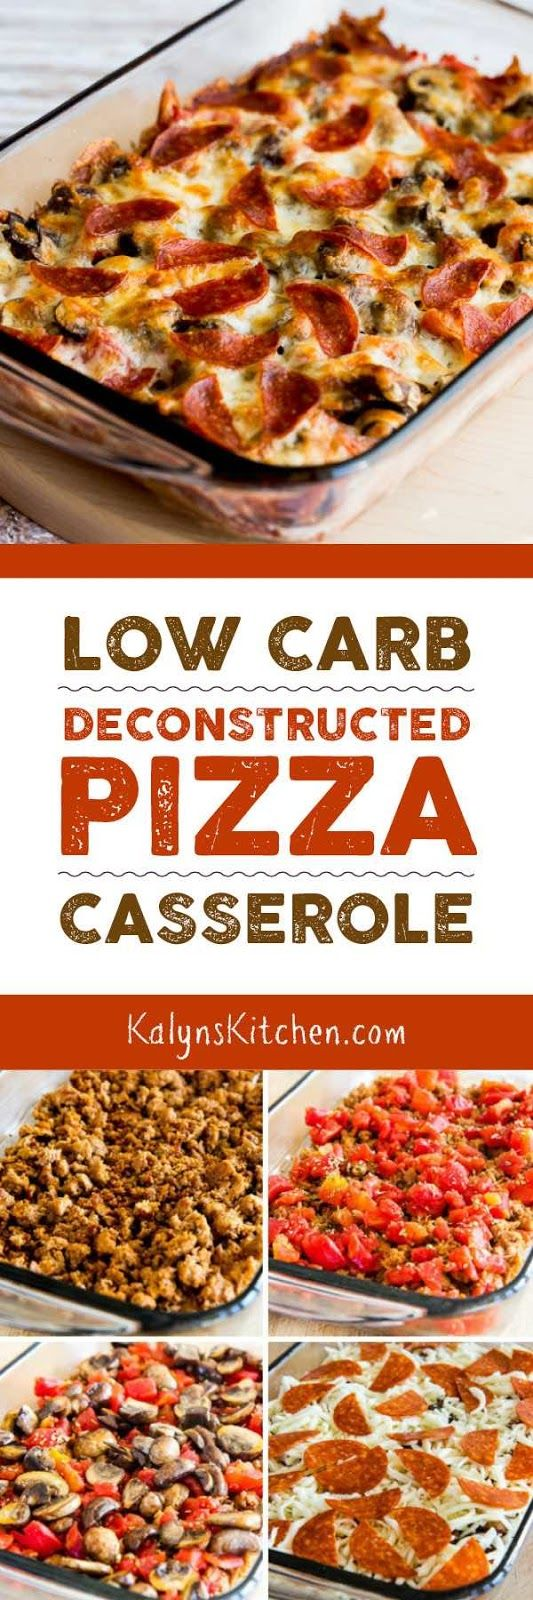 Low-Carb Deconstructed Pizza Casserole found on KalynsKitchen.com